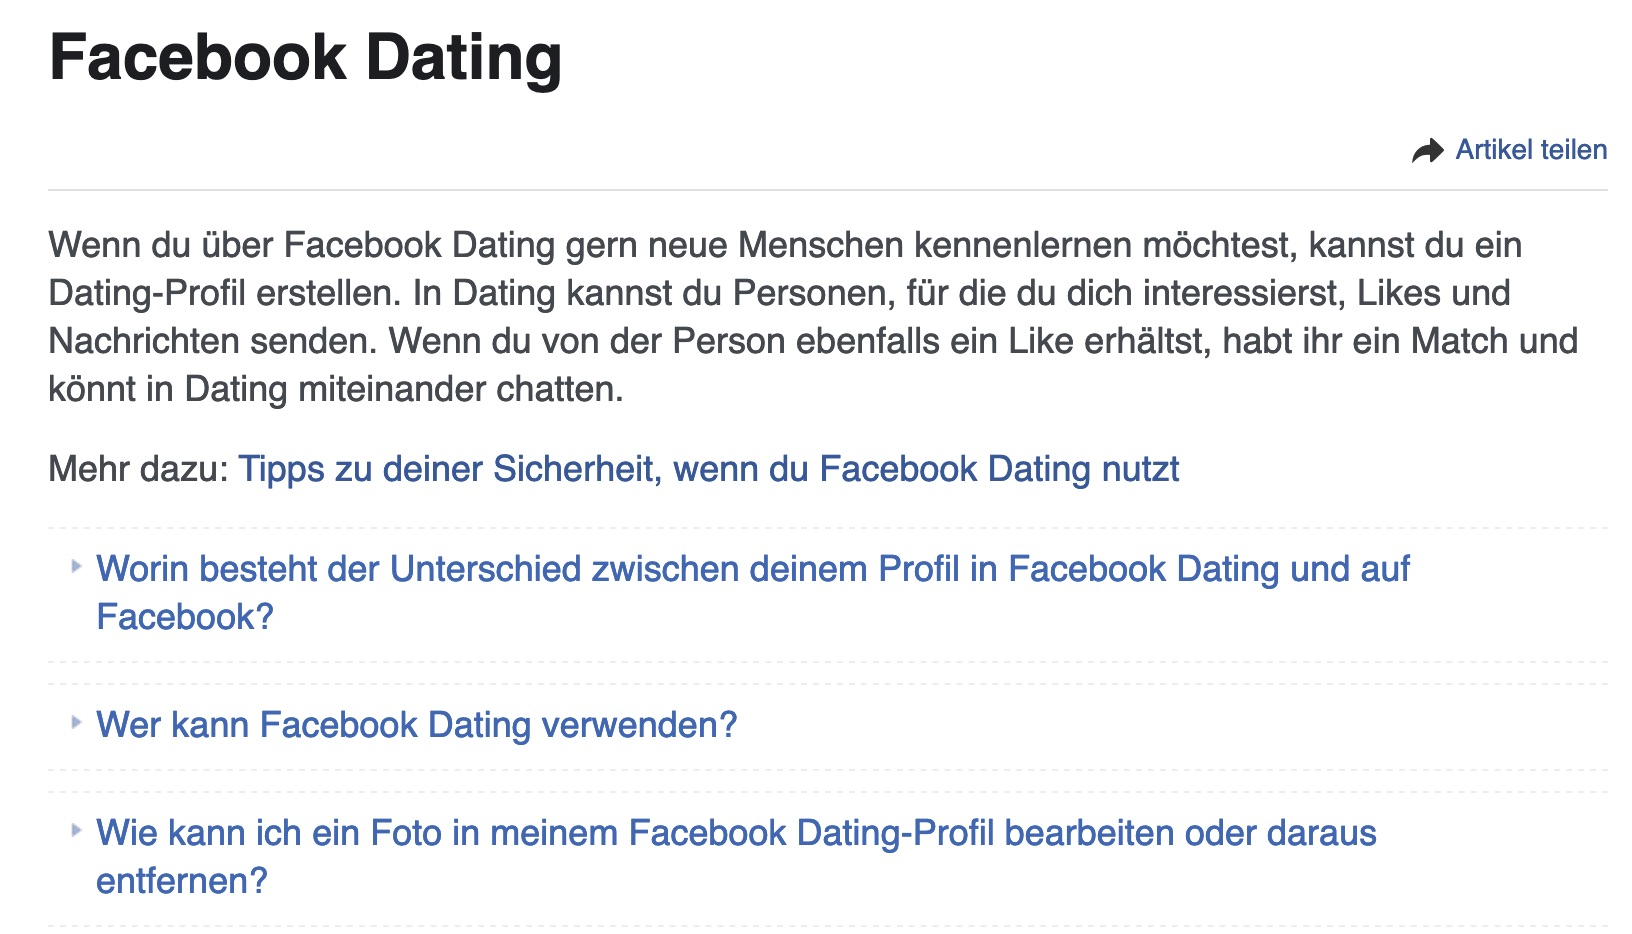 FacebookDating